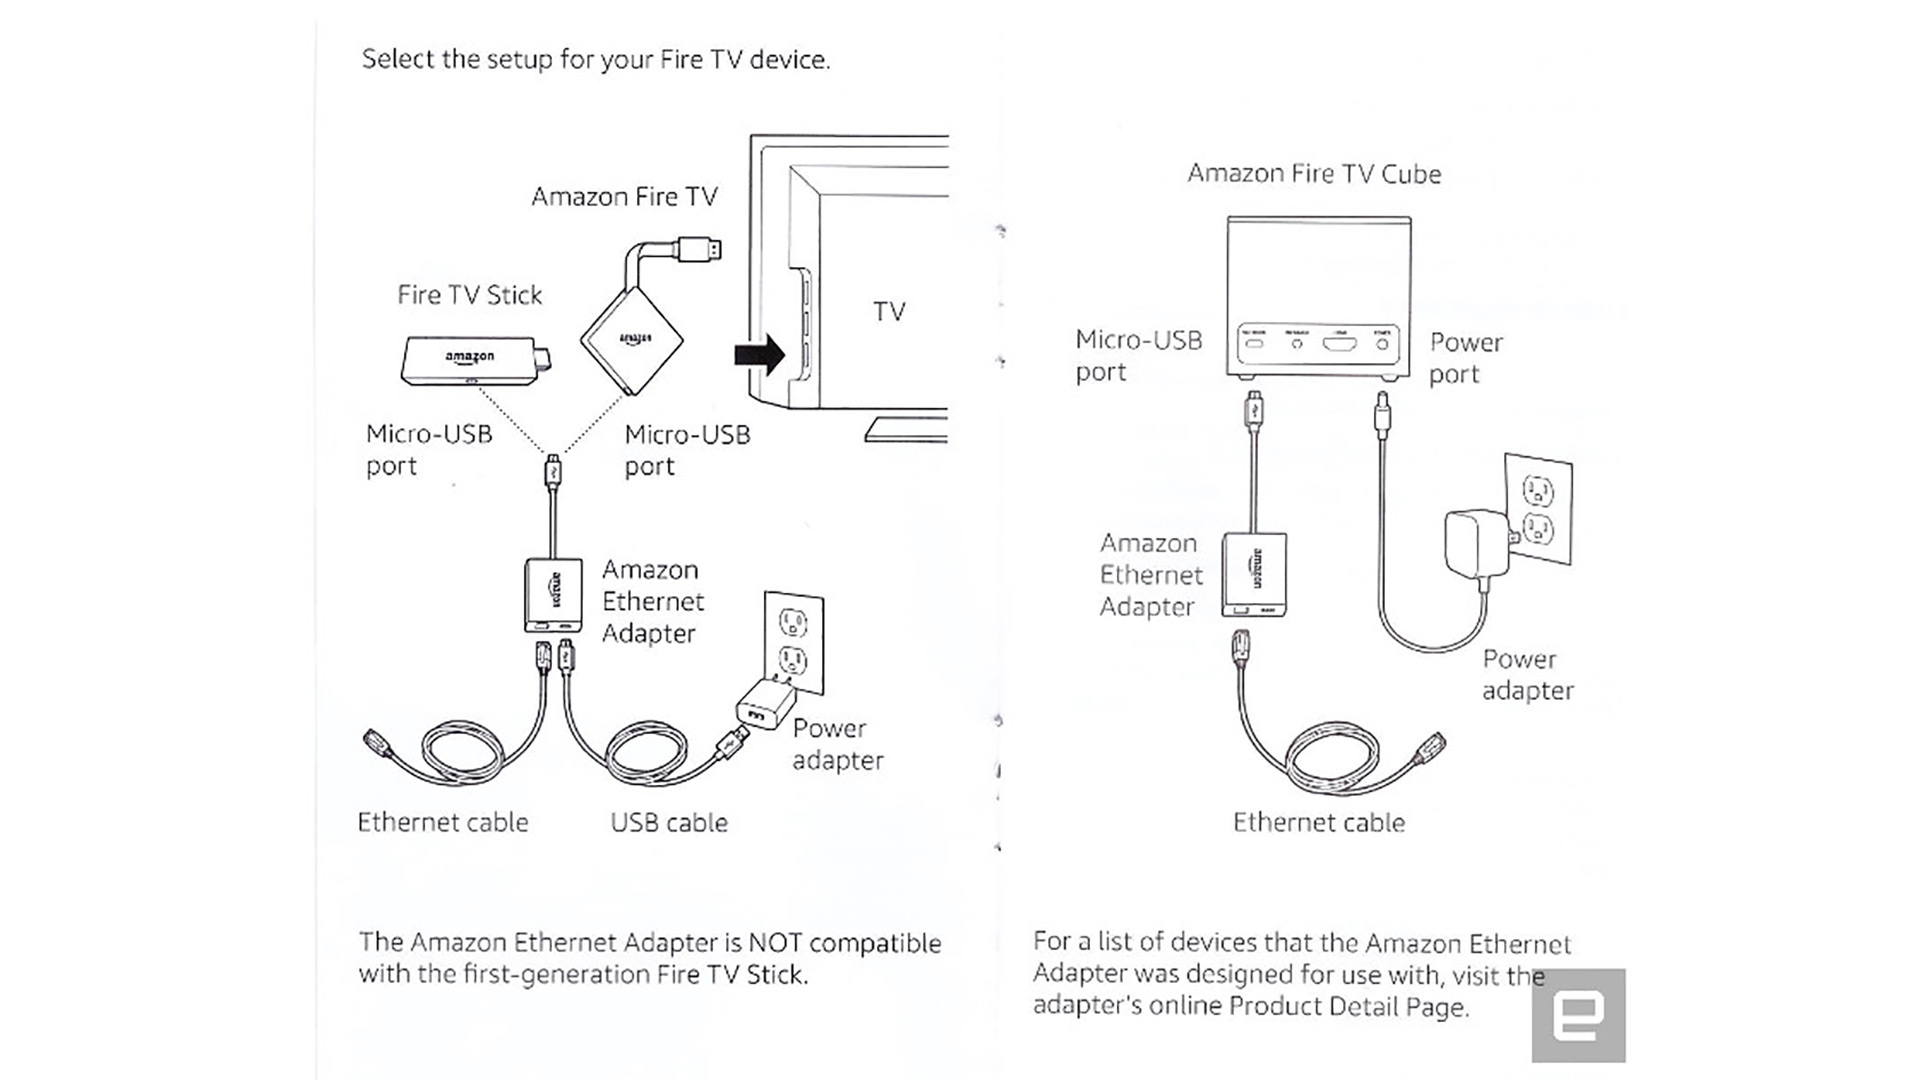 amazon fire tv cube has a micro usb port for an ethernet adapter andamazon fire tv cube has a micro usb port for an ethernet adapter and an infrared port